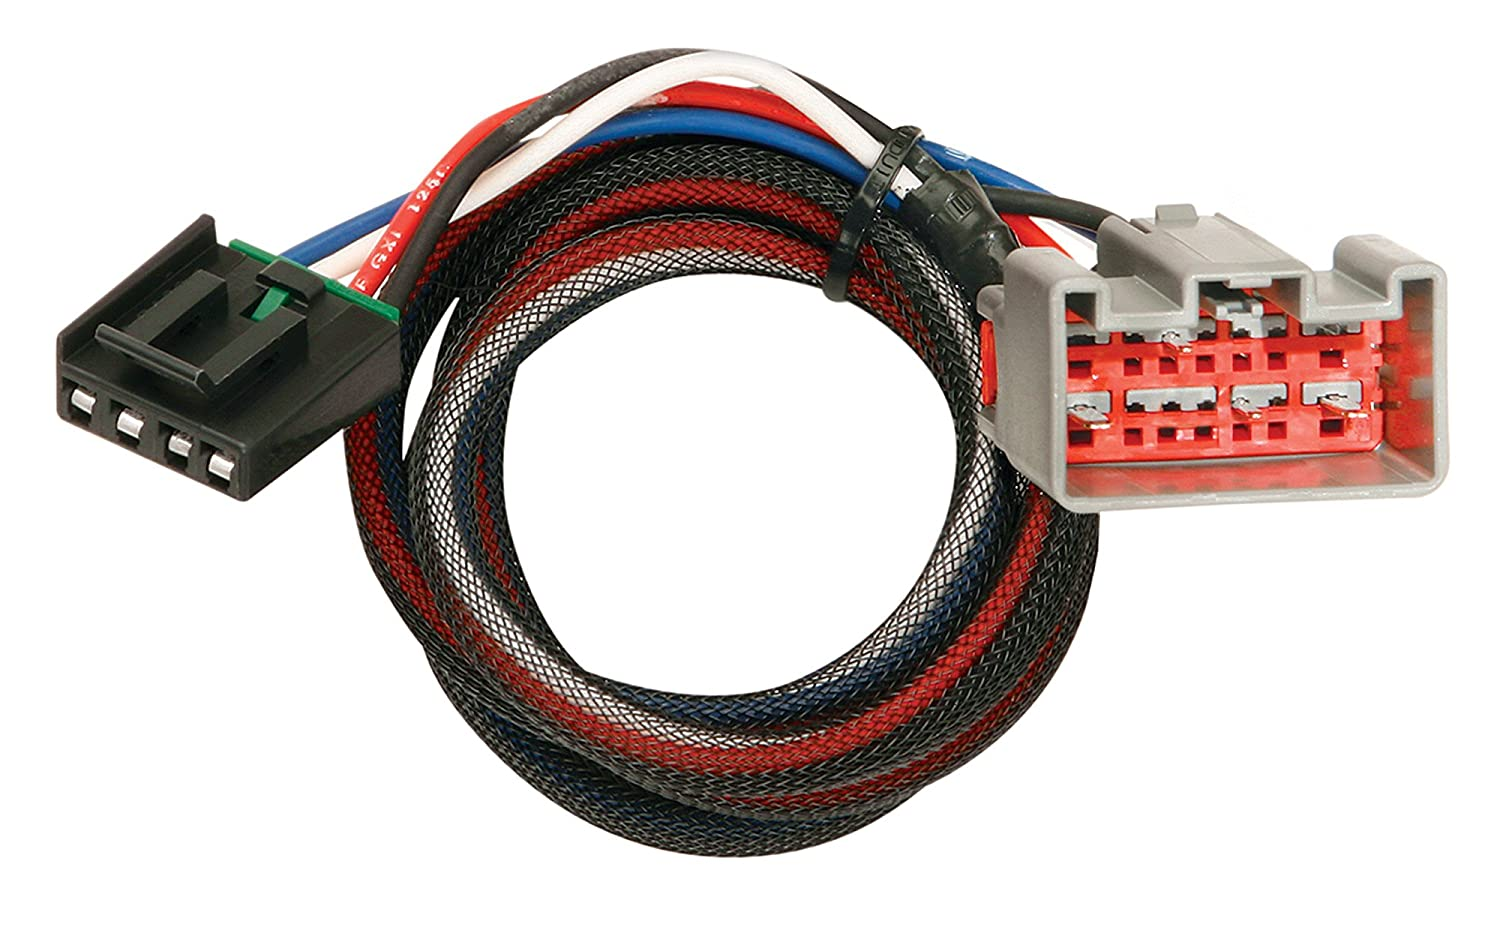 81maXrA6T3L._SL1500_ amazon com reese towpower 78124 brake control wiring harness for Wiring Harness Replacement Hazard at edmiracle.co